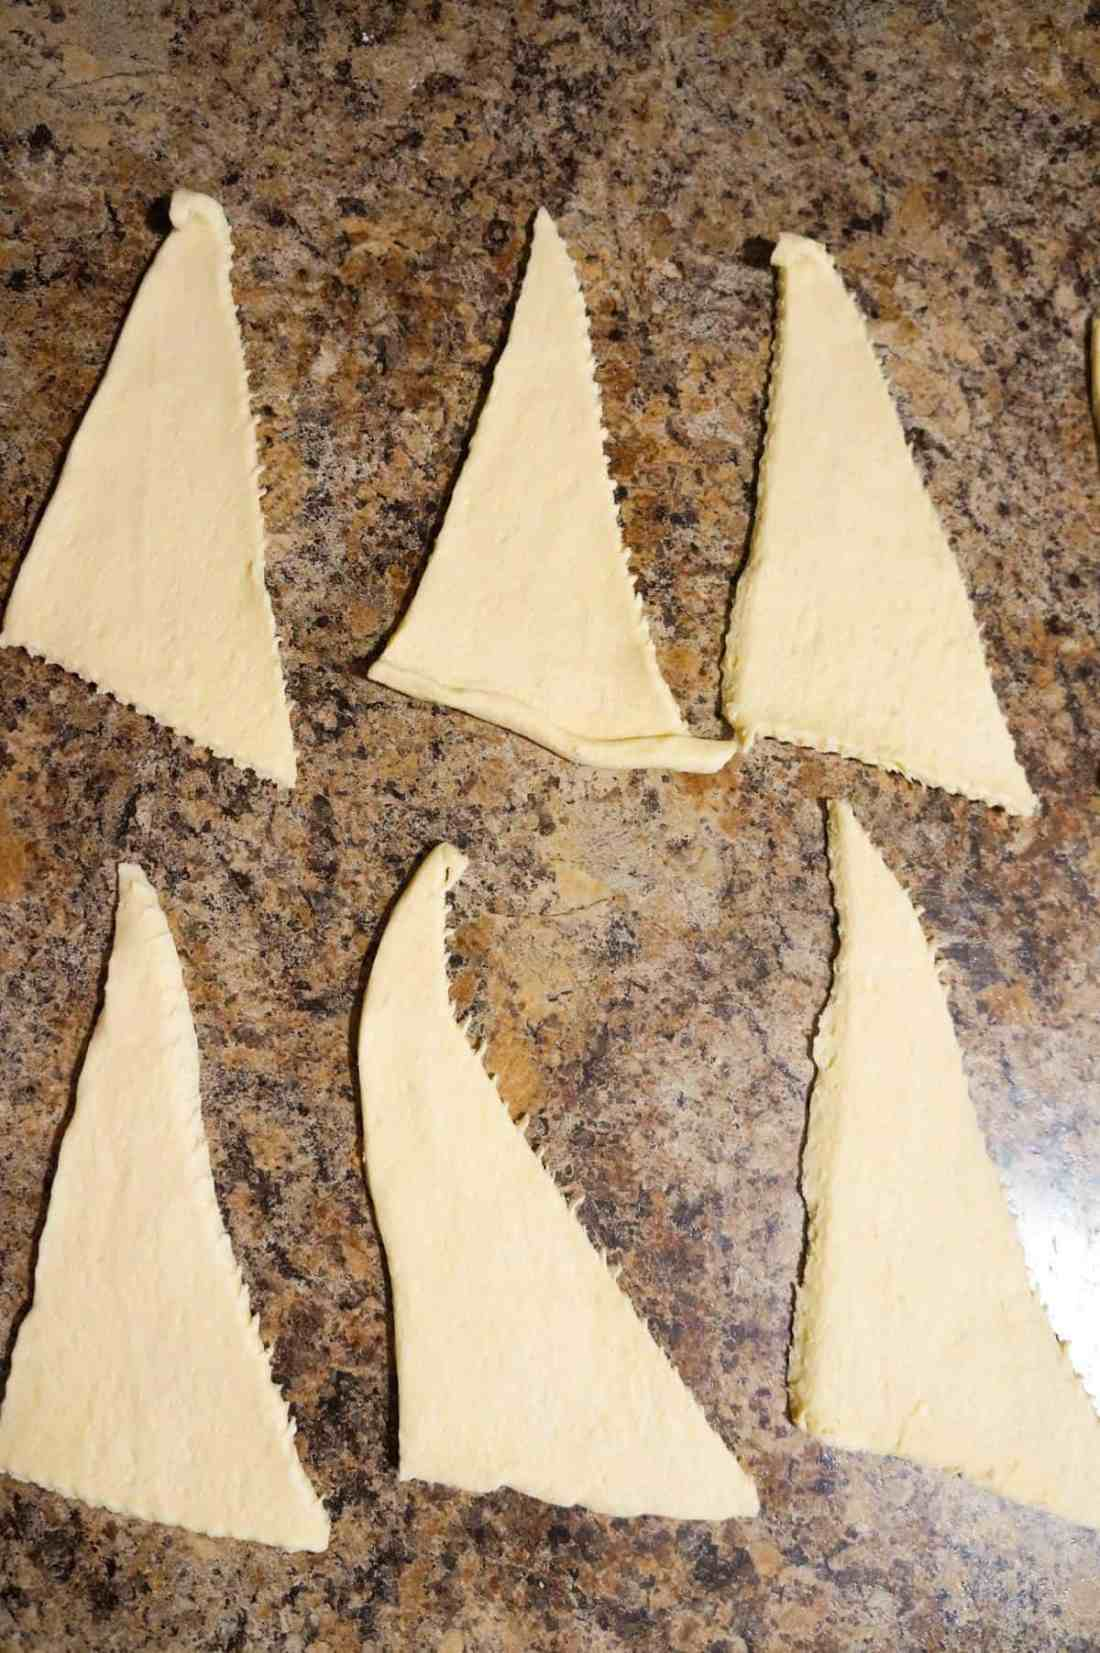 triangles of Pillsbury crescent dough on the counter